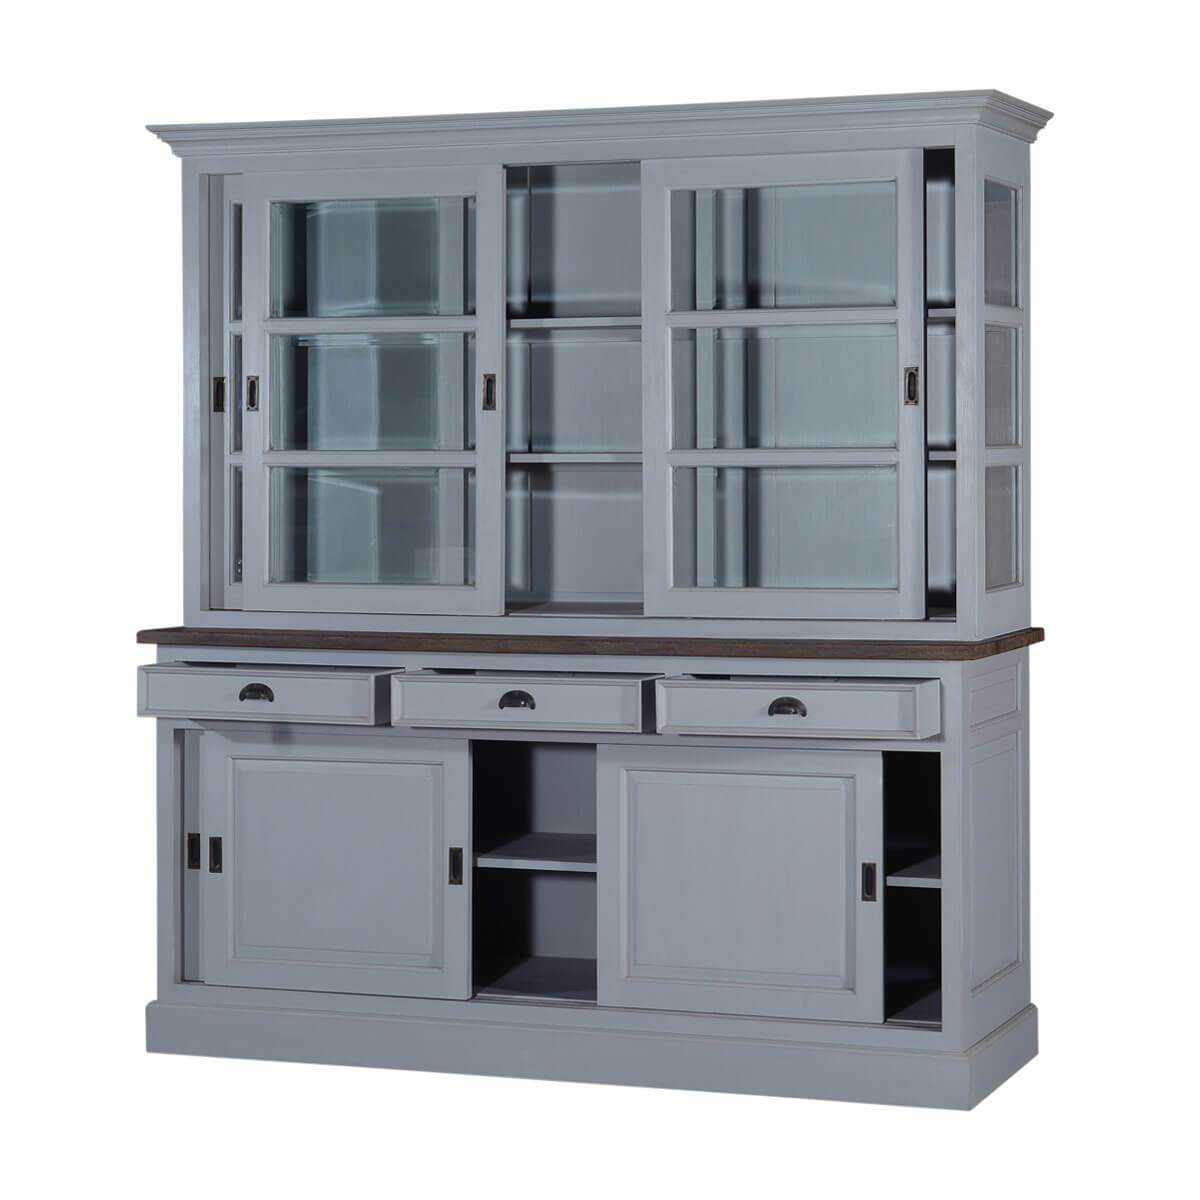 Chesterfield Teak Solid Wood Sliding Door 3 Drawer China Cabinet